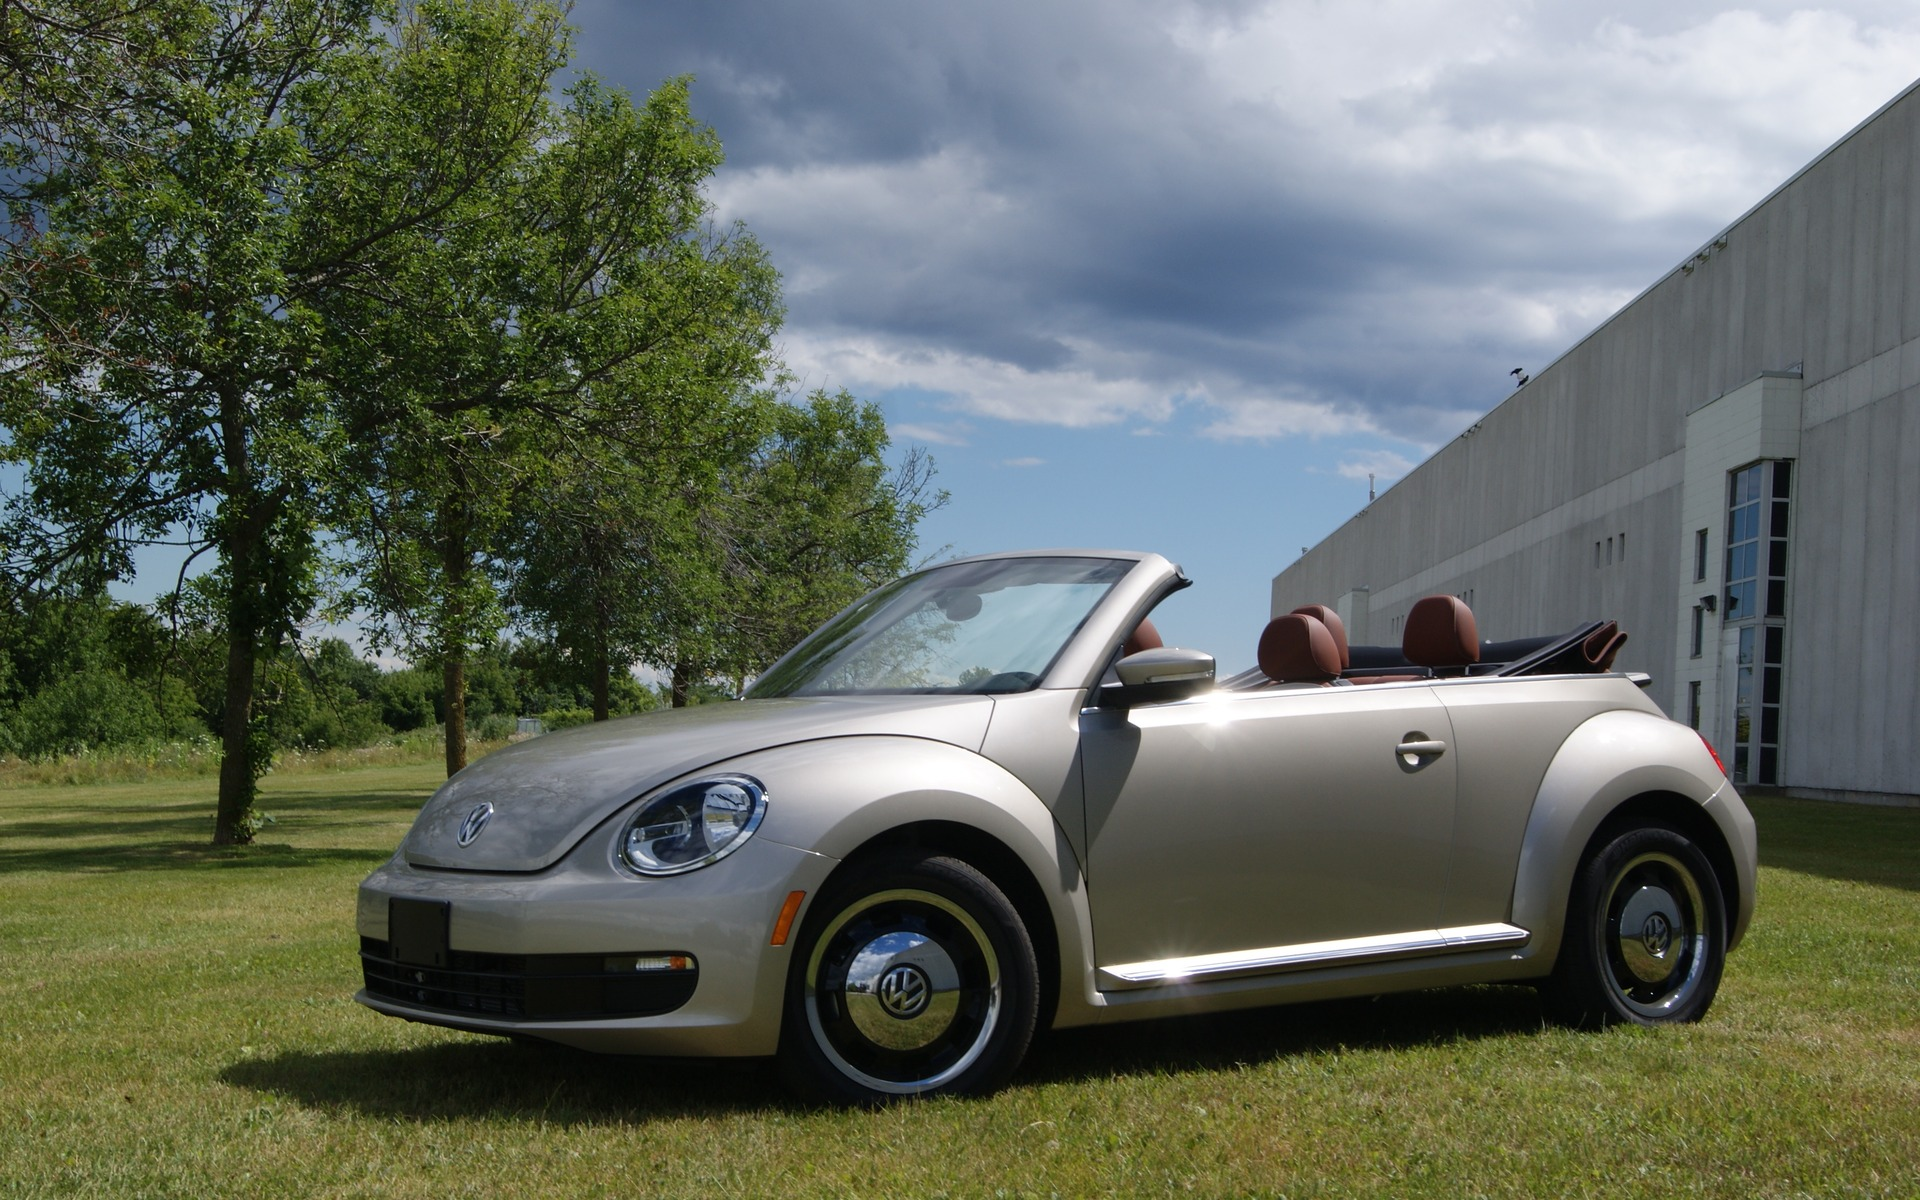 2016 volkswagen beetle classic convertible now on sale in canada the car guide. Black Bedroom Furniture Sets. Home Design Ideas